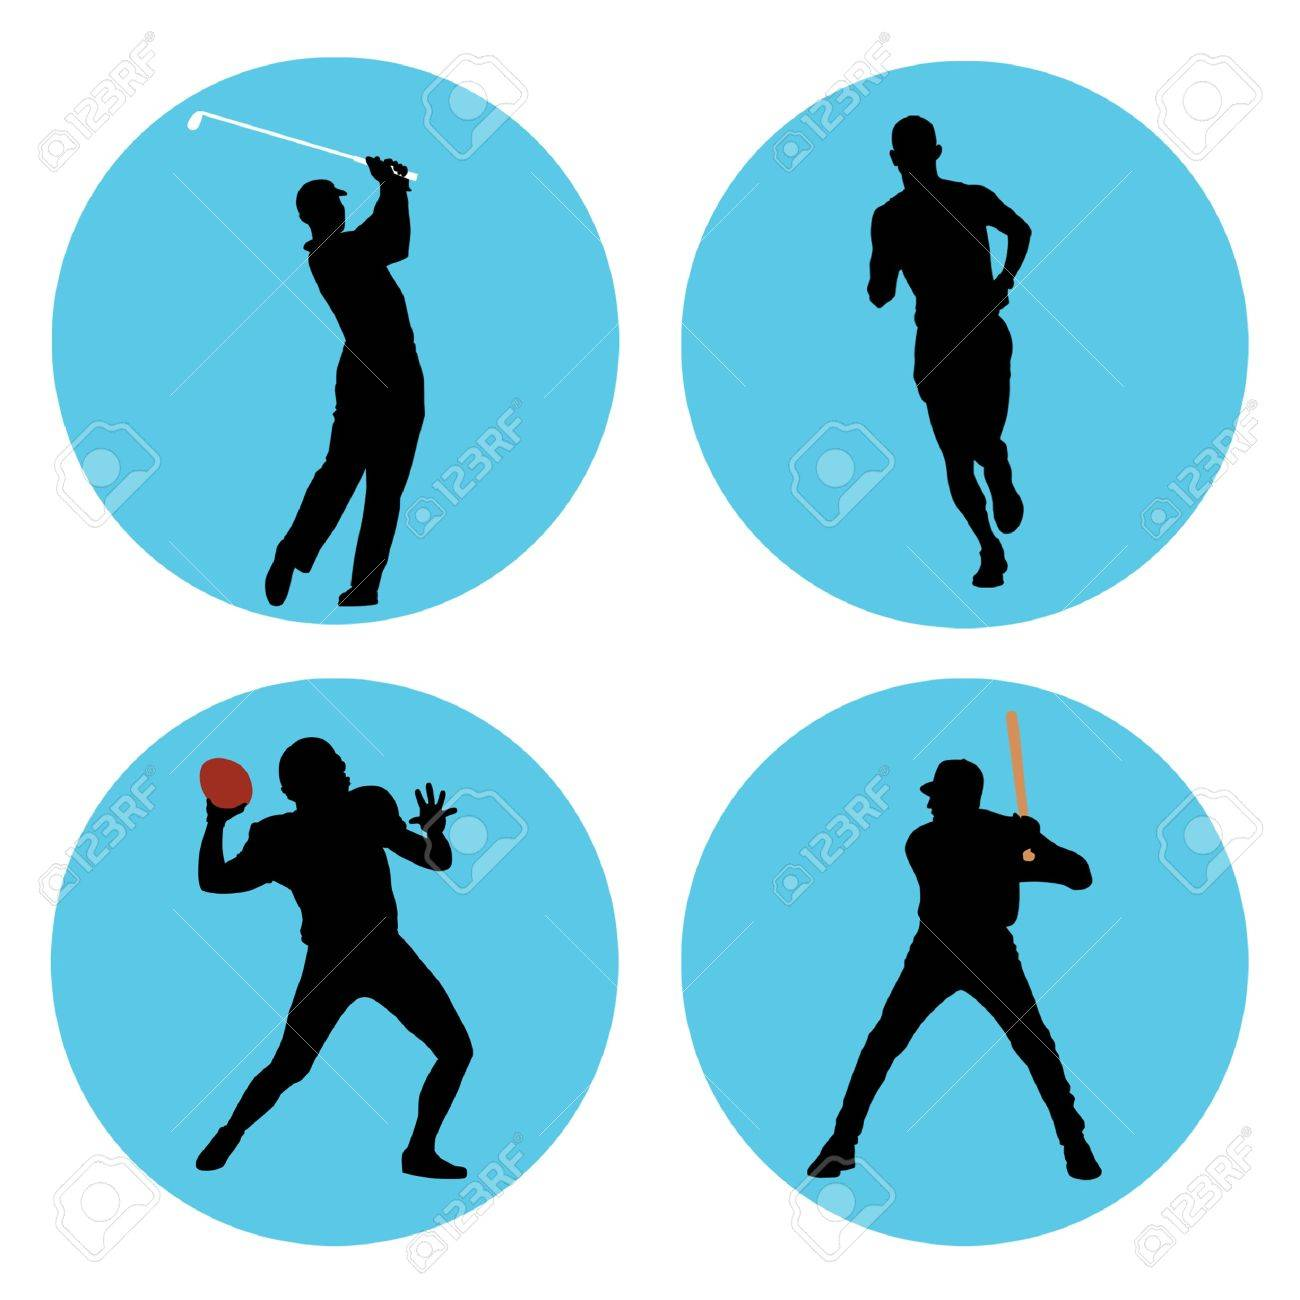 Sports athlete silhouettes in blue circles. - 10438409